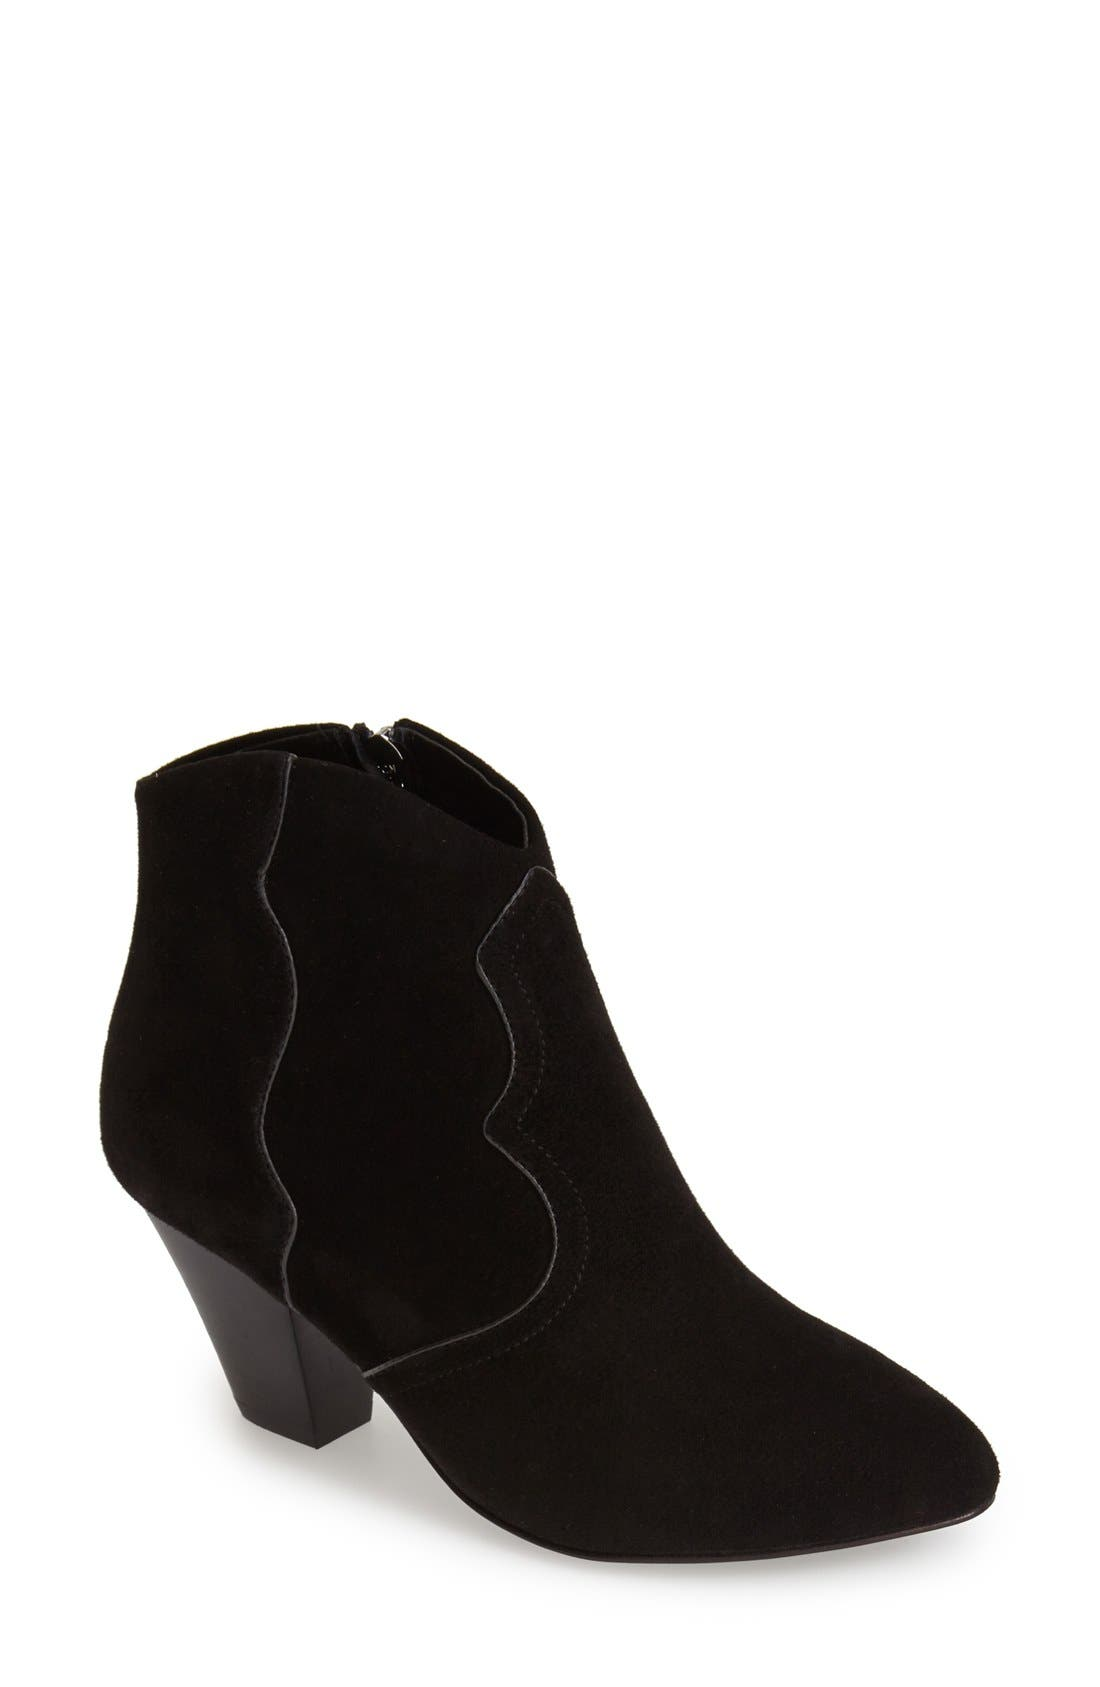 Main Image - Ash 'Gang' Pointy Toe Bootie (Women)